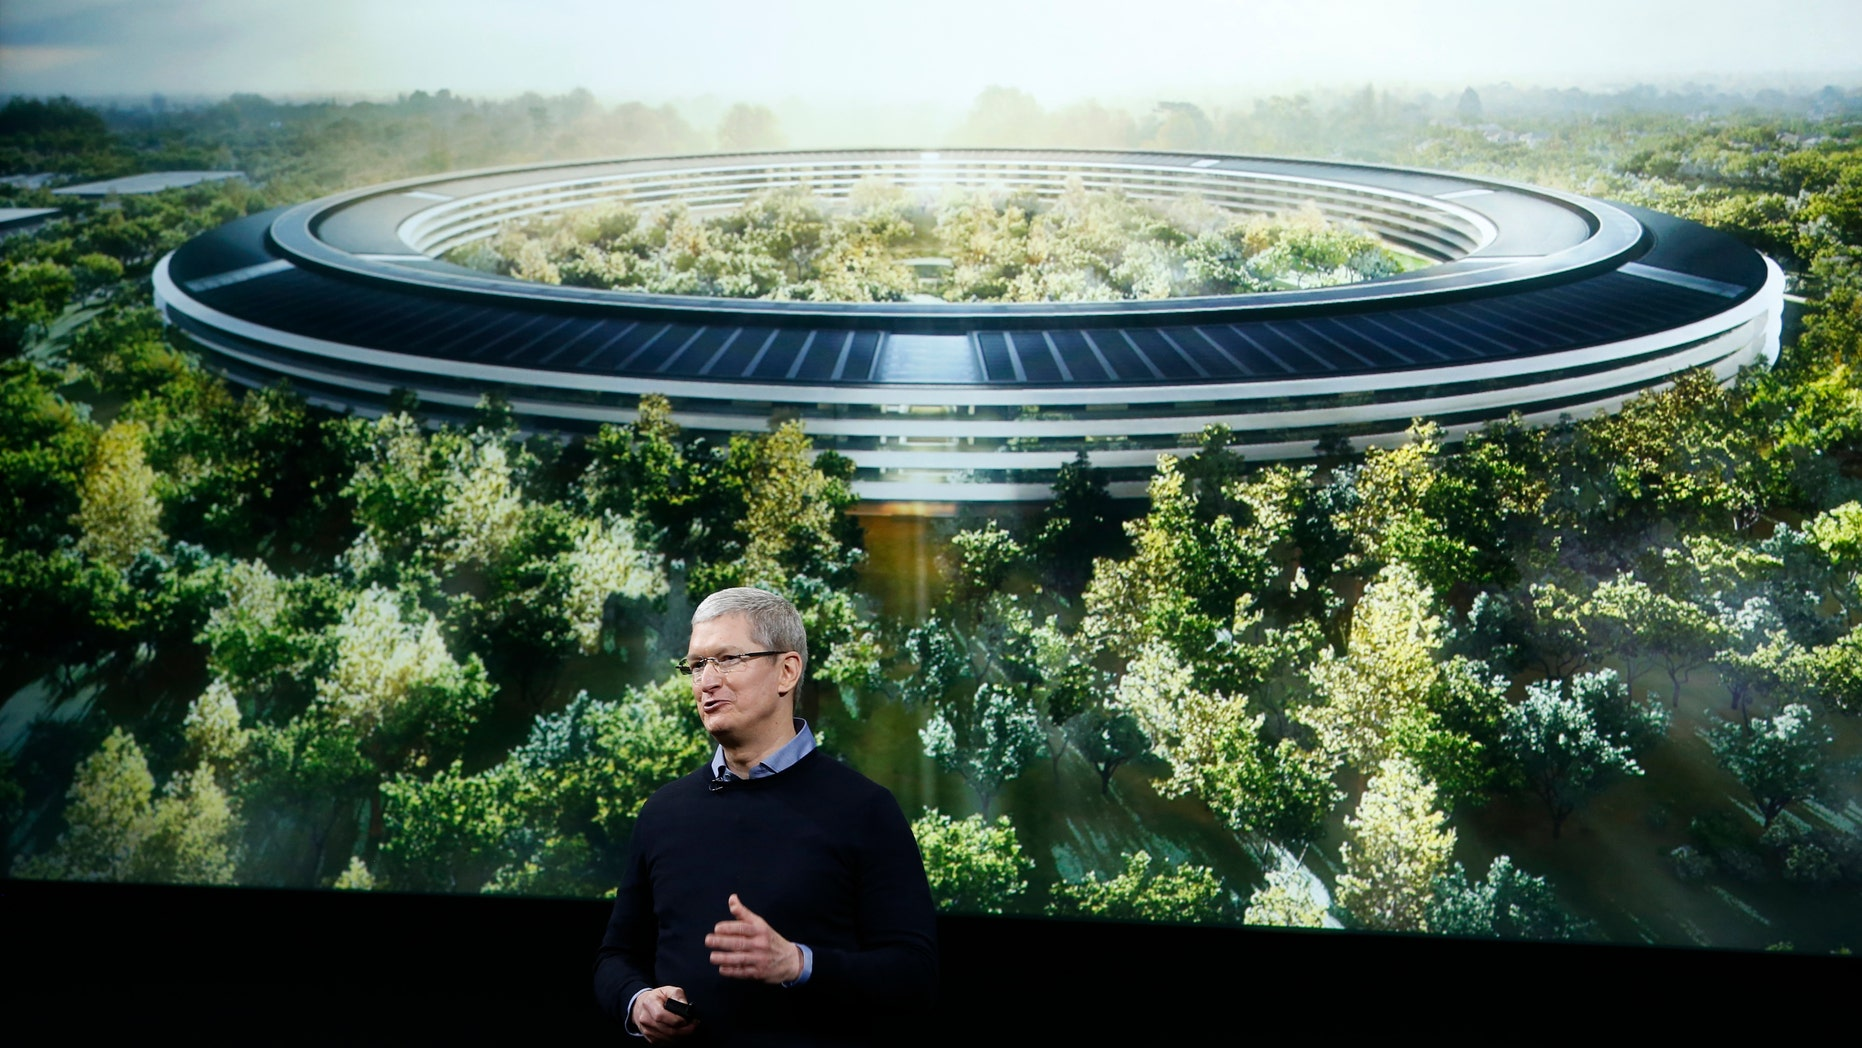 File photo - Apple CEO Tim Cook speaks during an event at the Apple headquarters in Cupertino, California March 21, 2016. (REUTERS/Stephen Lam)